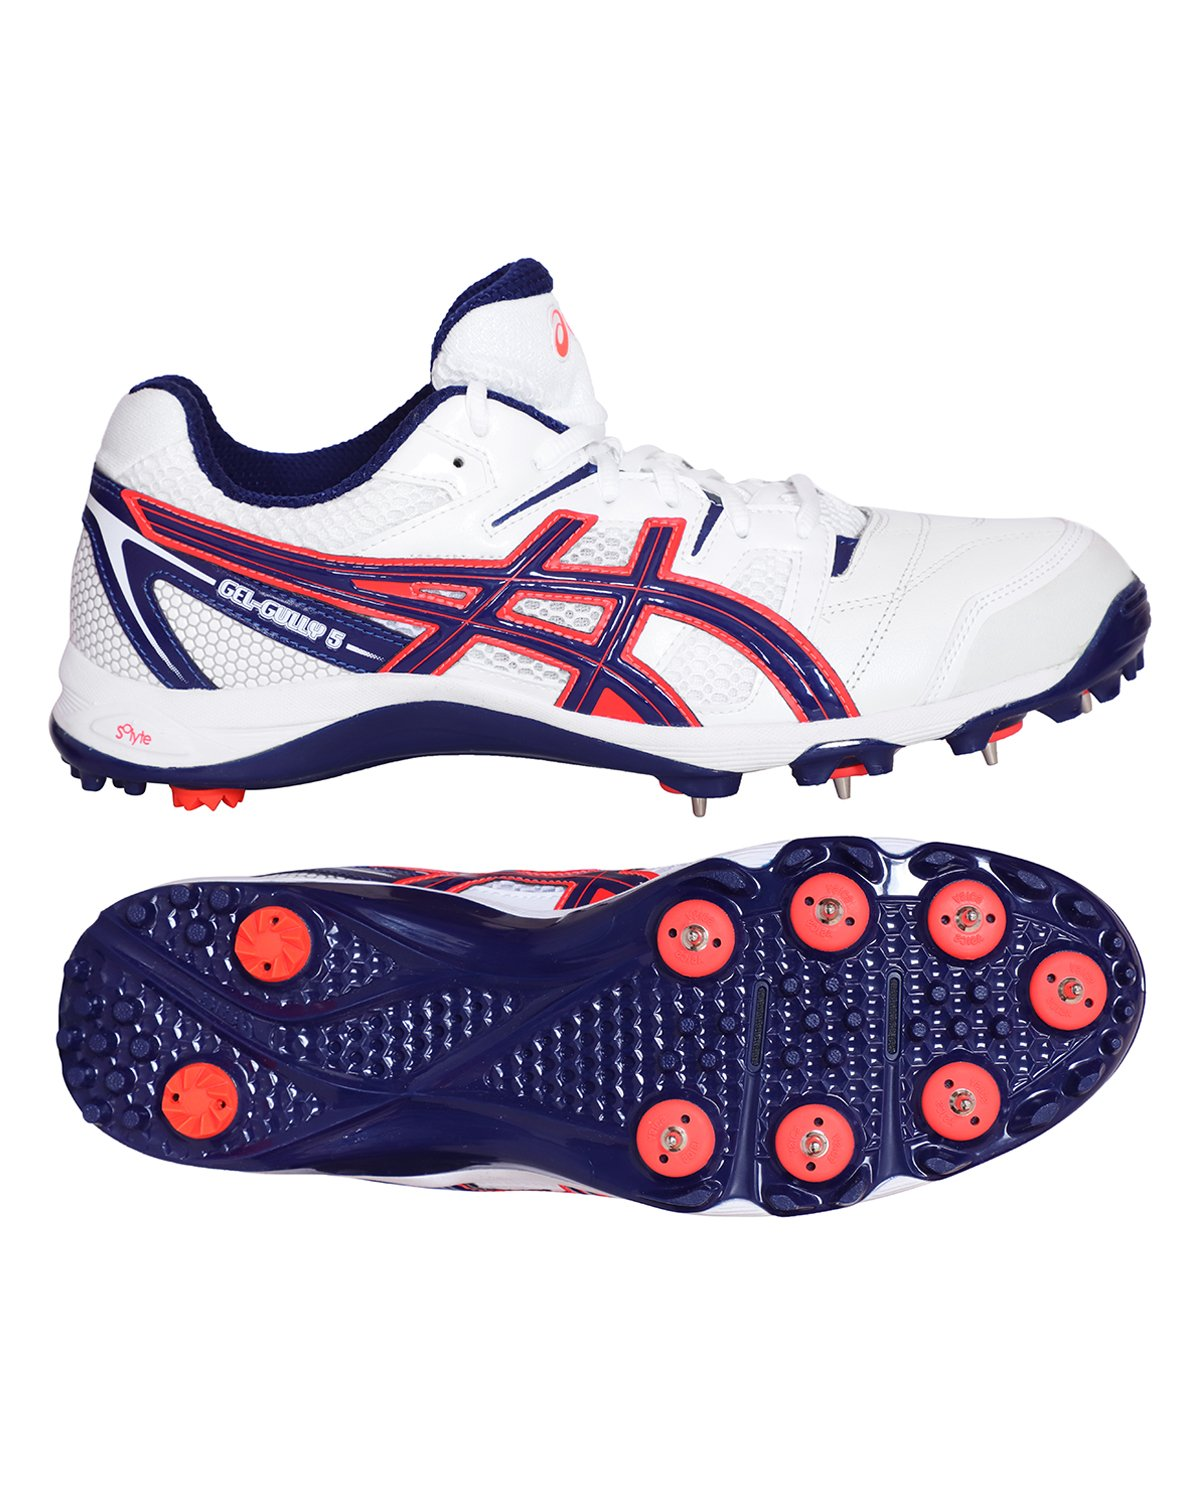 ASICS Gel Gully 5 Cricket Shoes - Steel Spikes